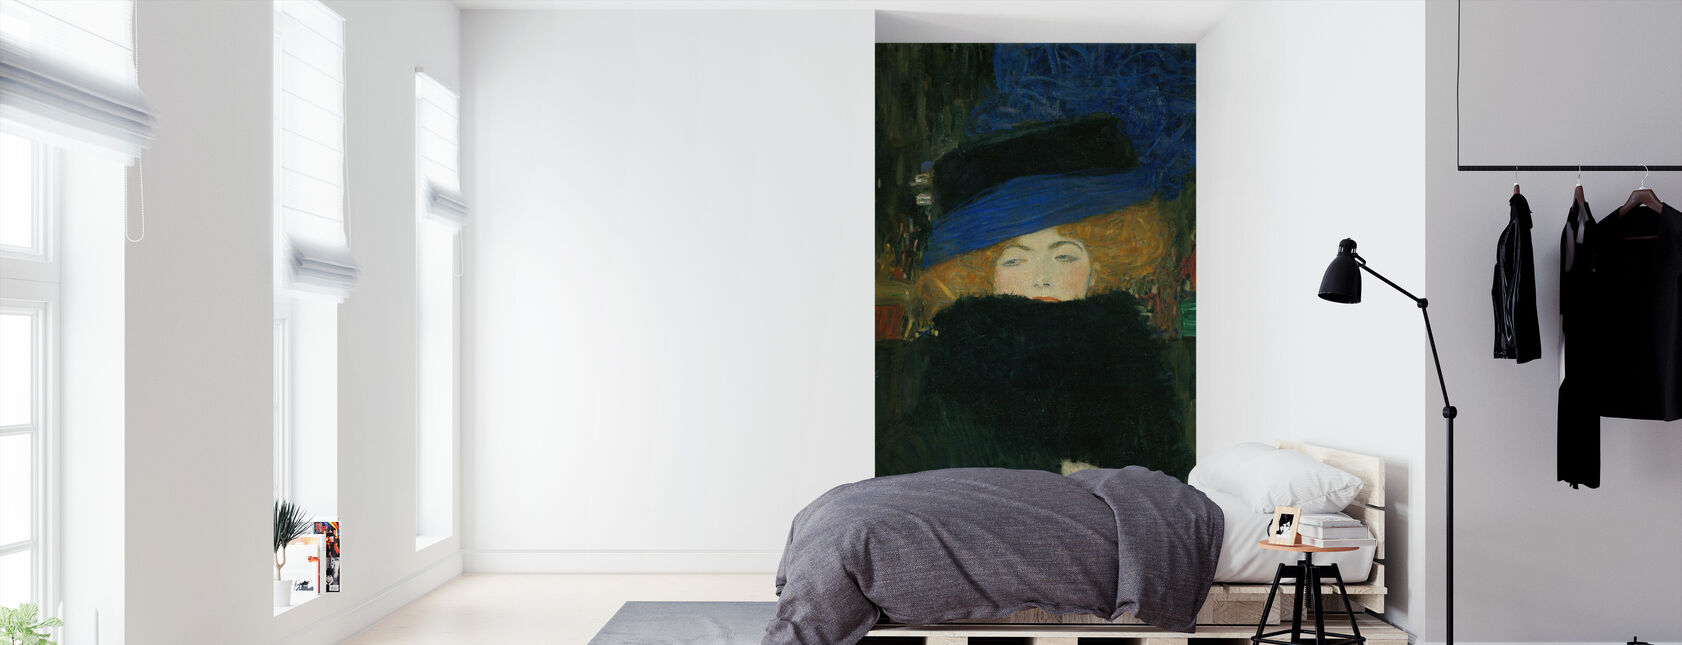 Lady with Hat and Feather Boa - Gustav Klimt - Wallpaper - Bedroom